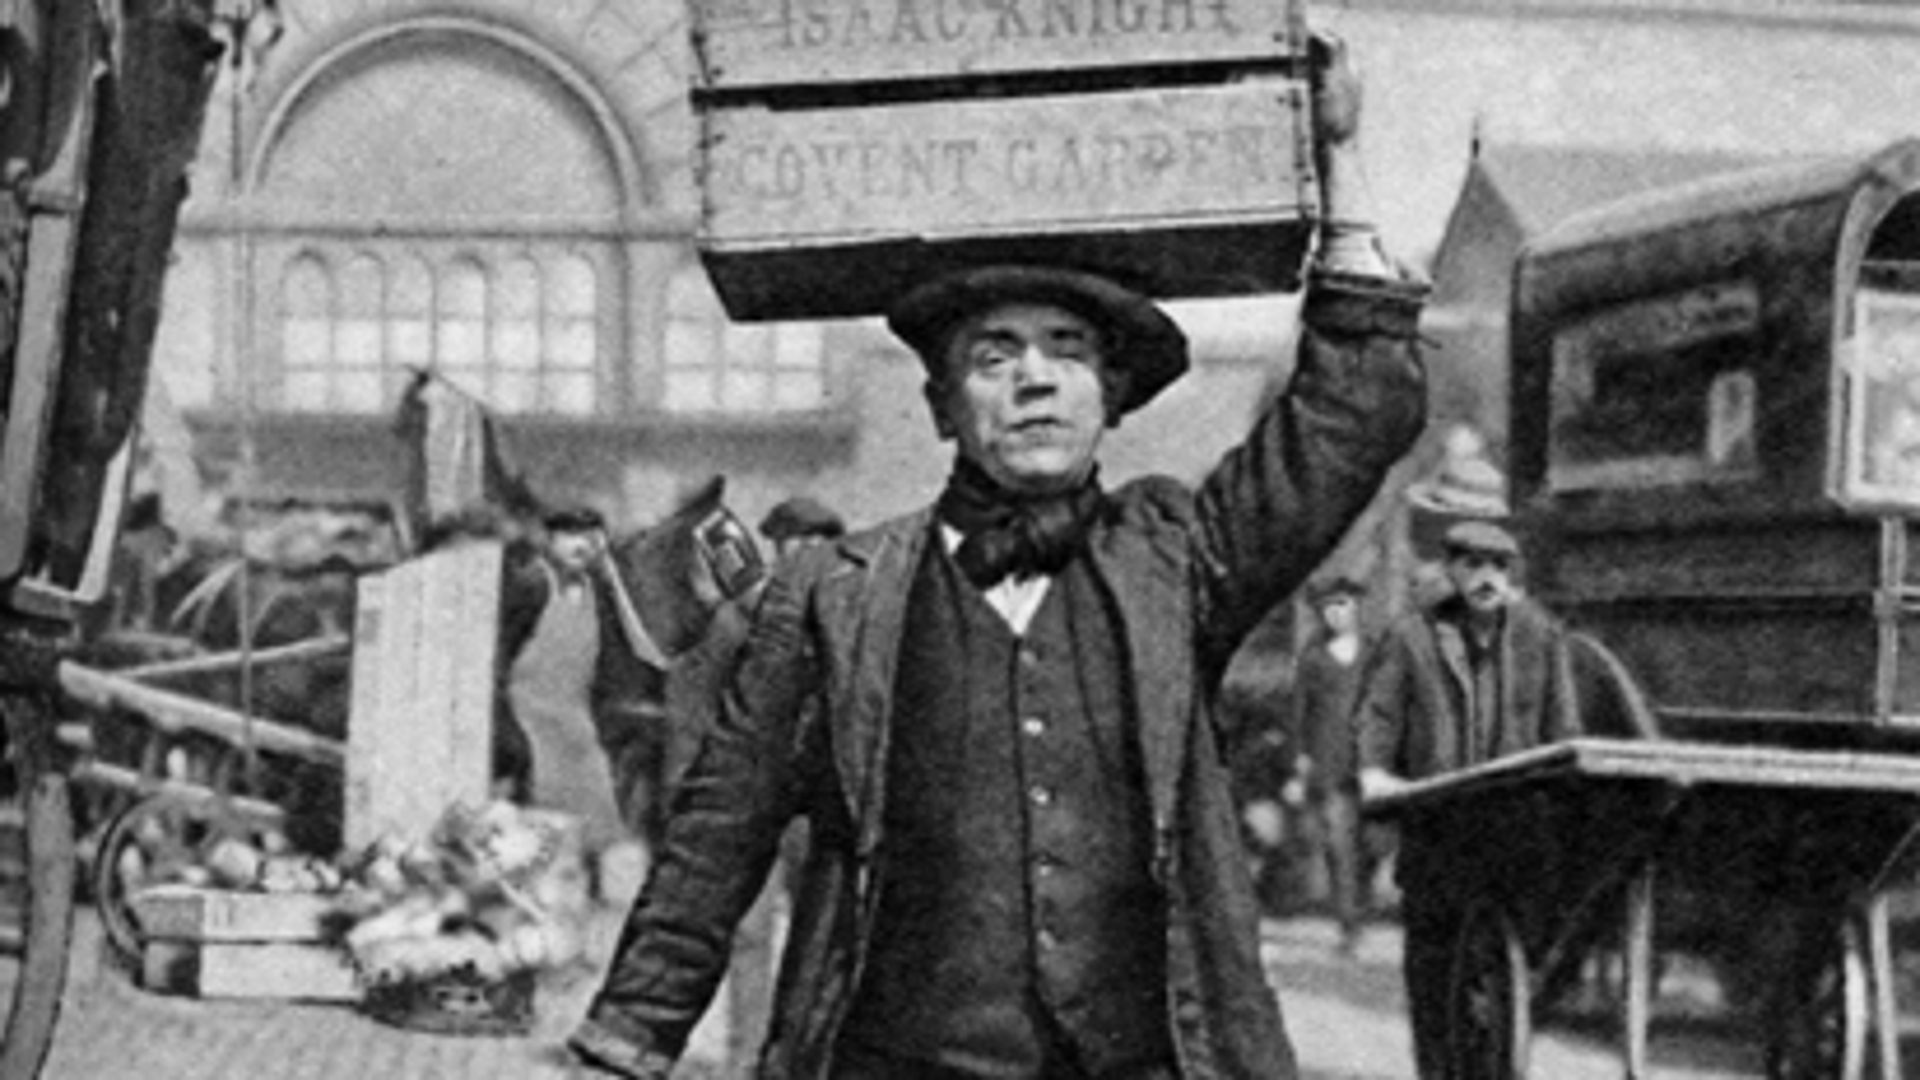 A London porter carrying a basket on his head.